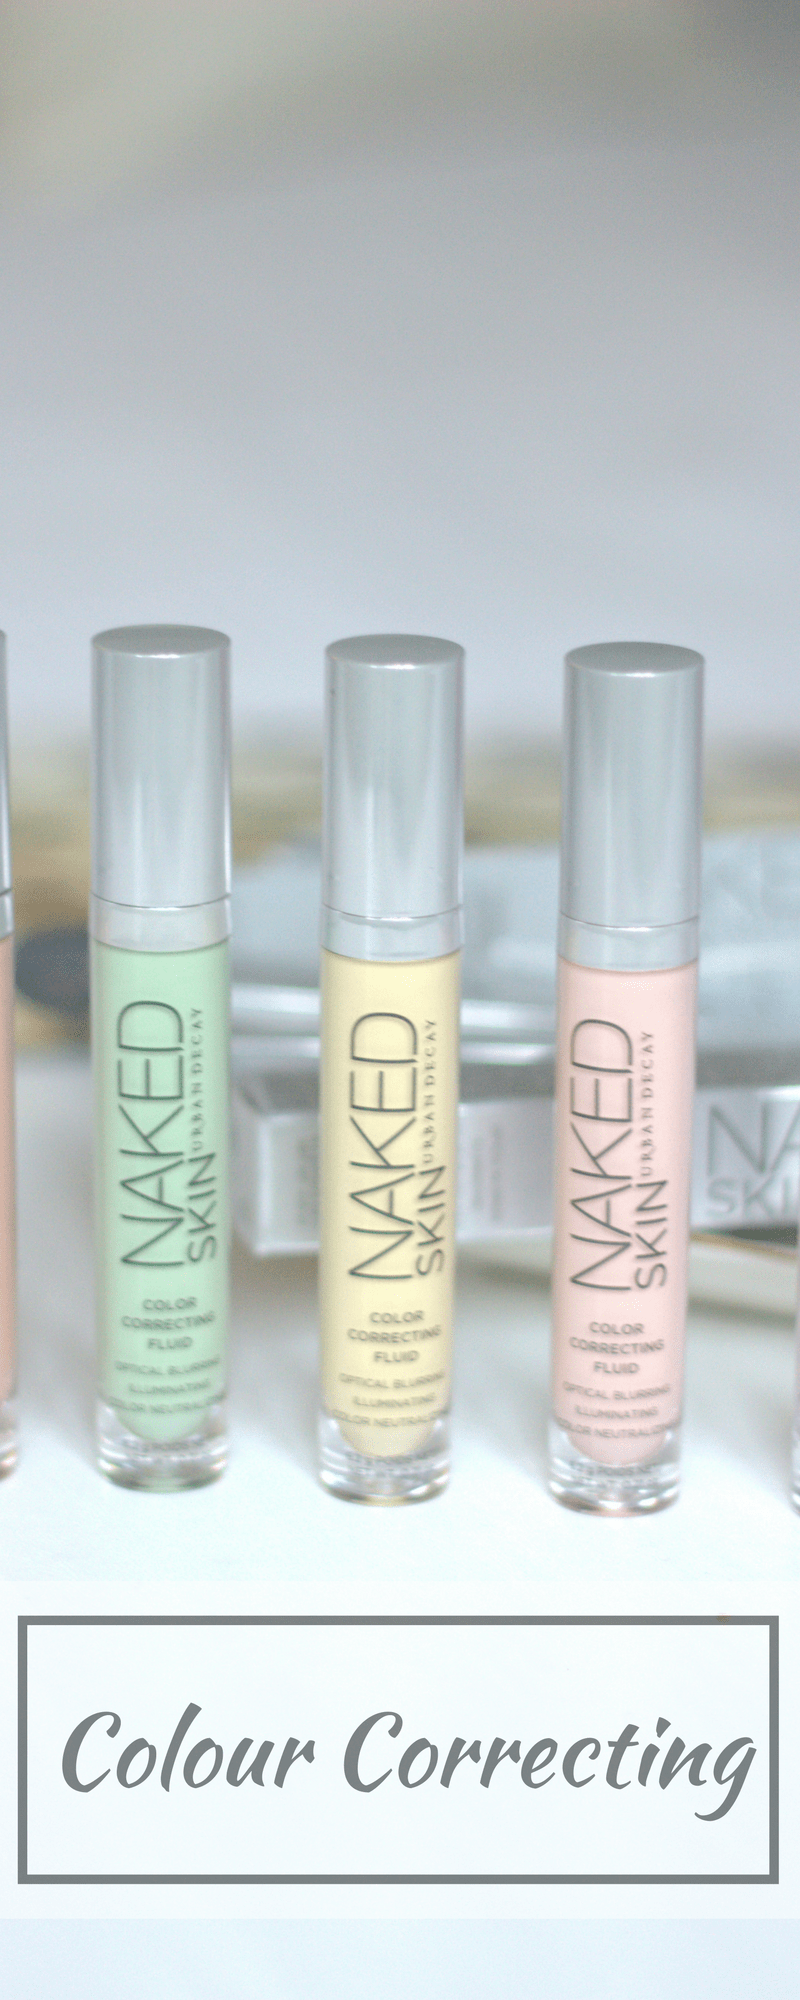 Urban Decay Naked Skin Colour Correcting Fluid